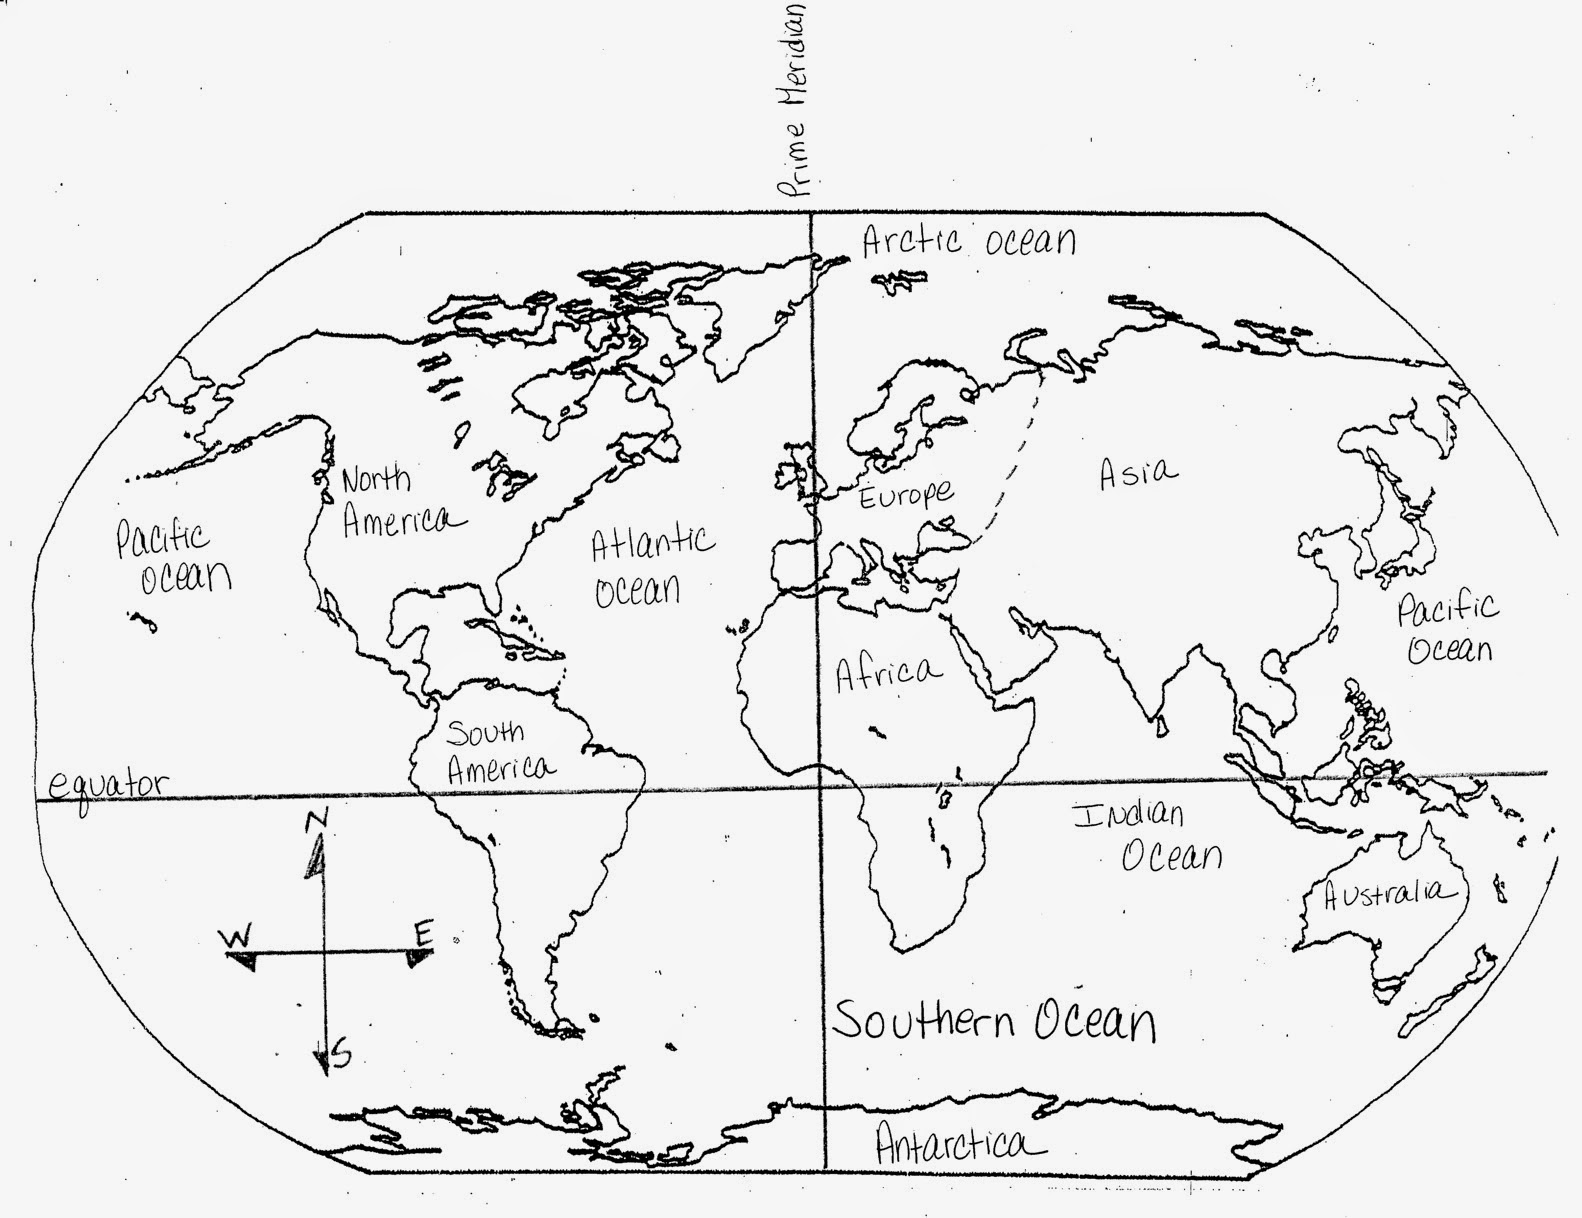 7 Continents 5 Oceans Shows Of College Location